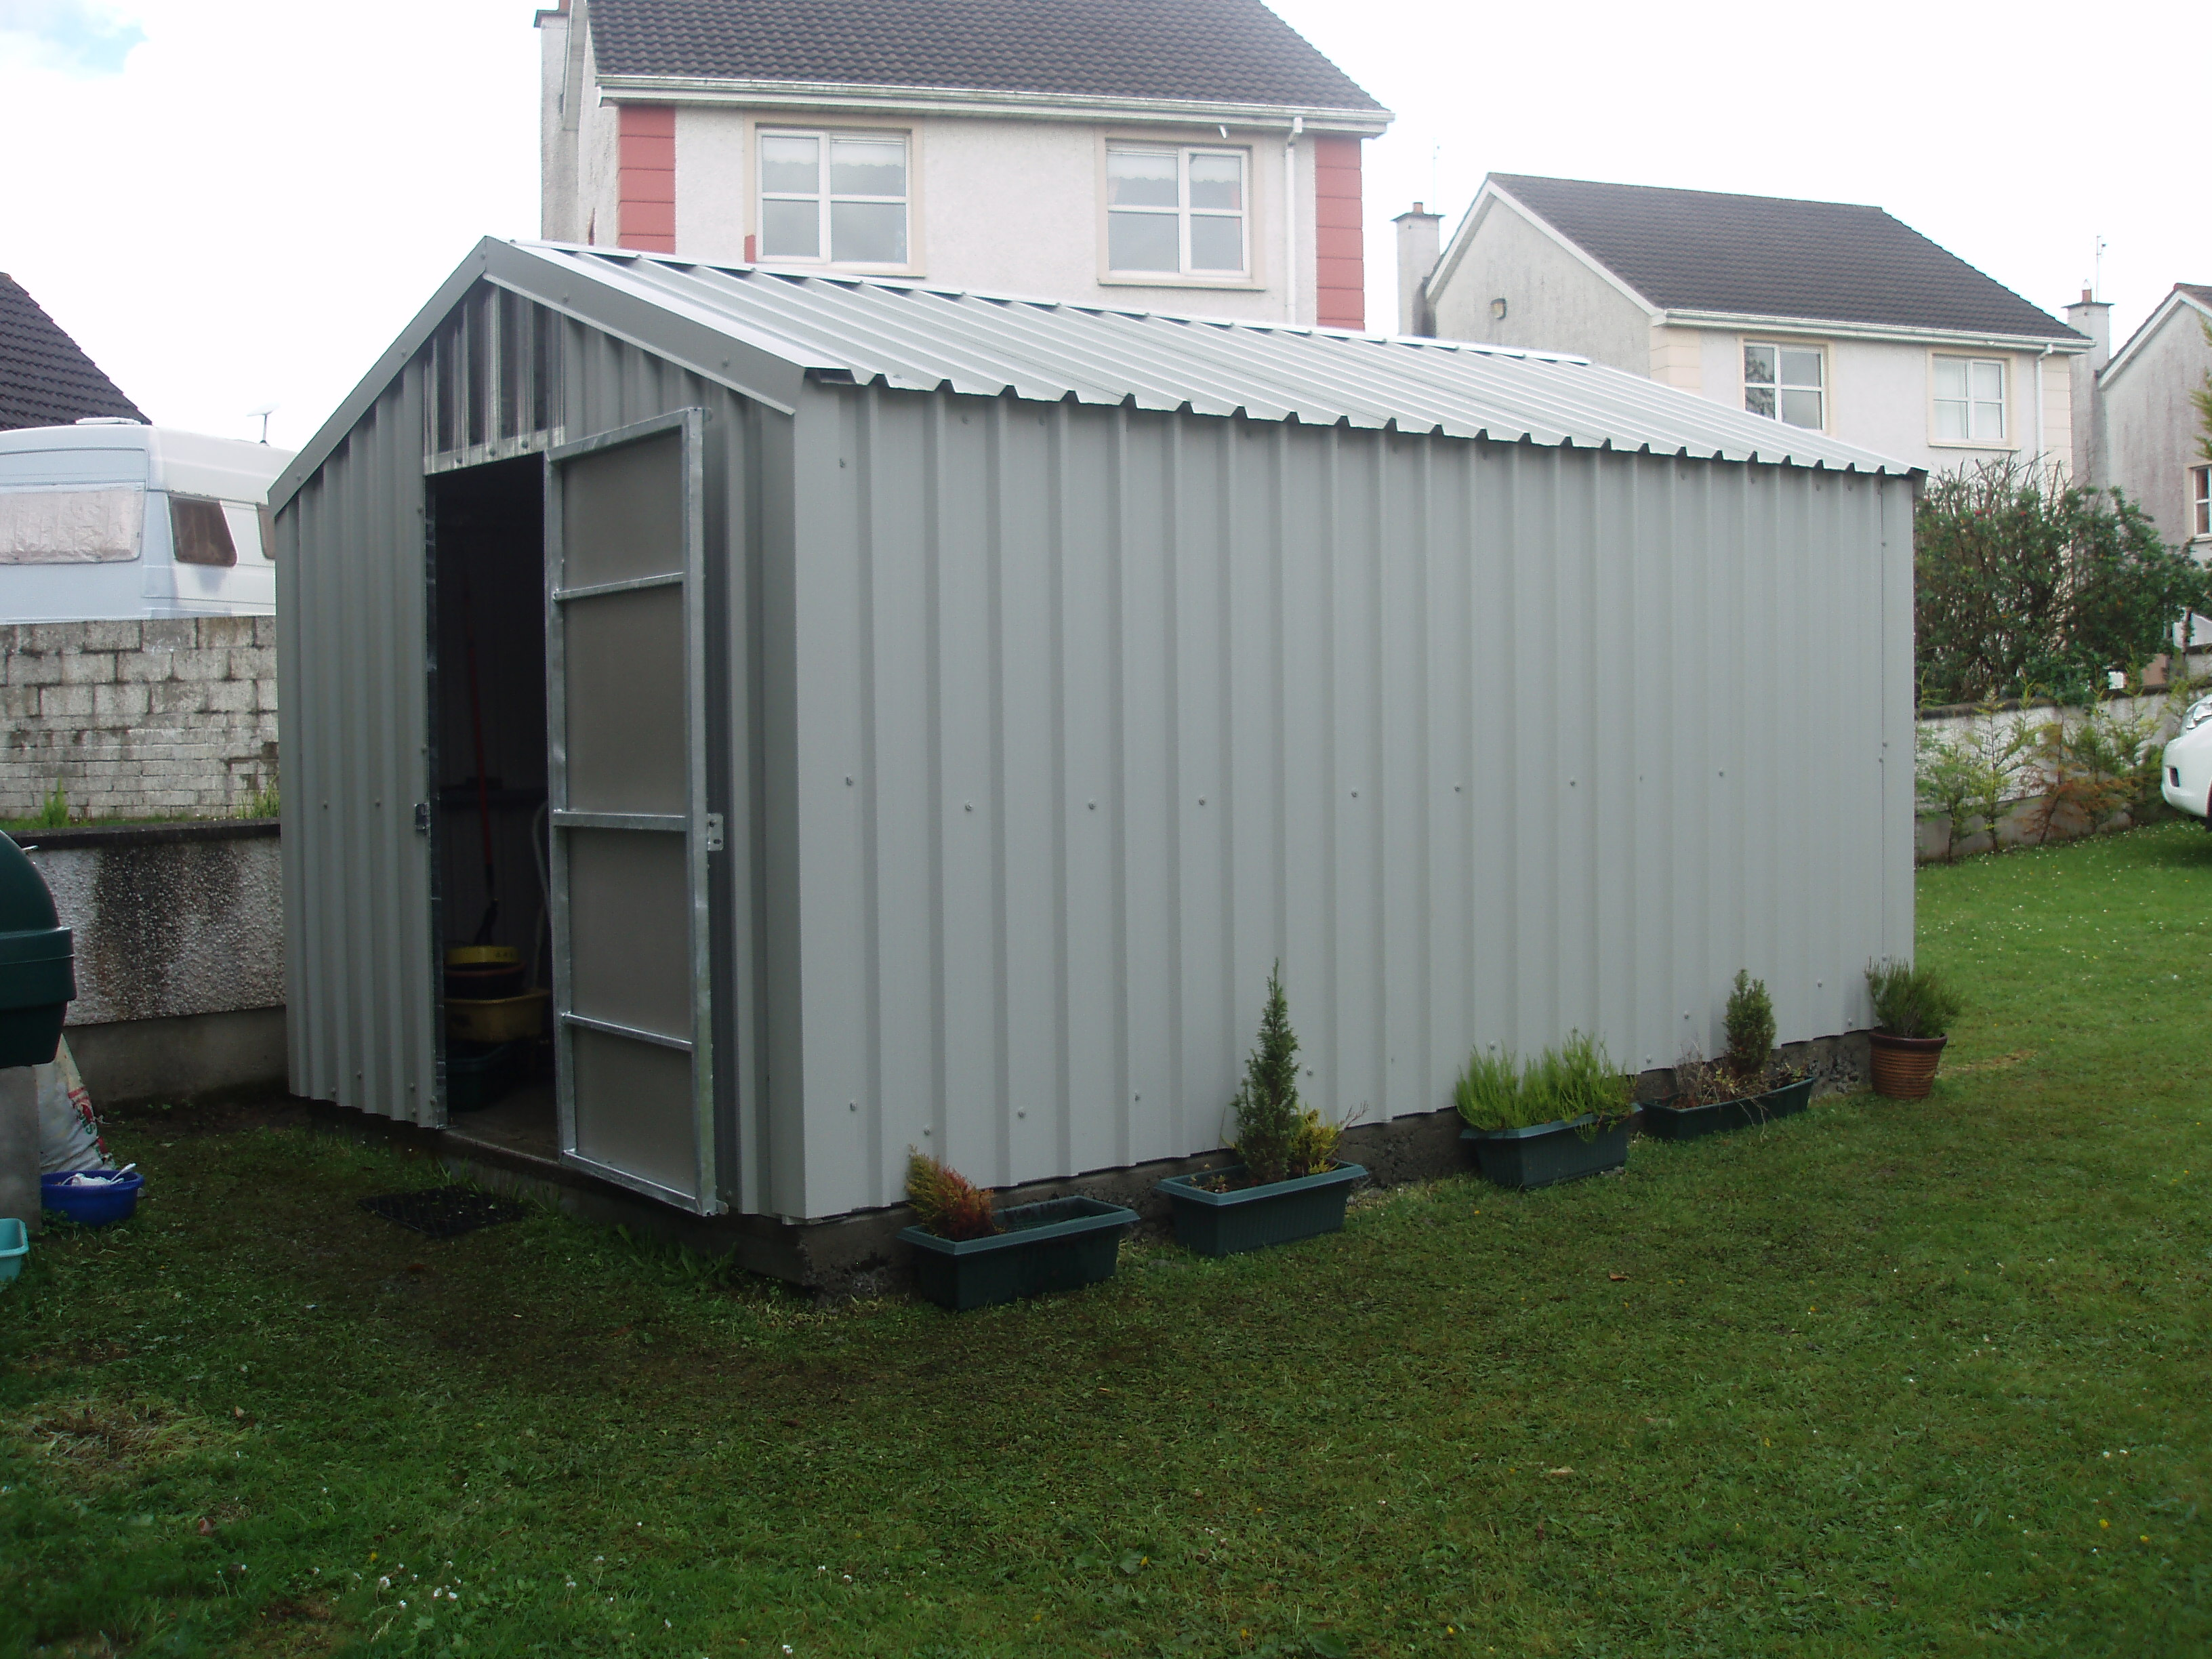 transform backyard sheds prices wooden garden your for sale outdoor to yard storage premier see